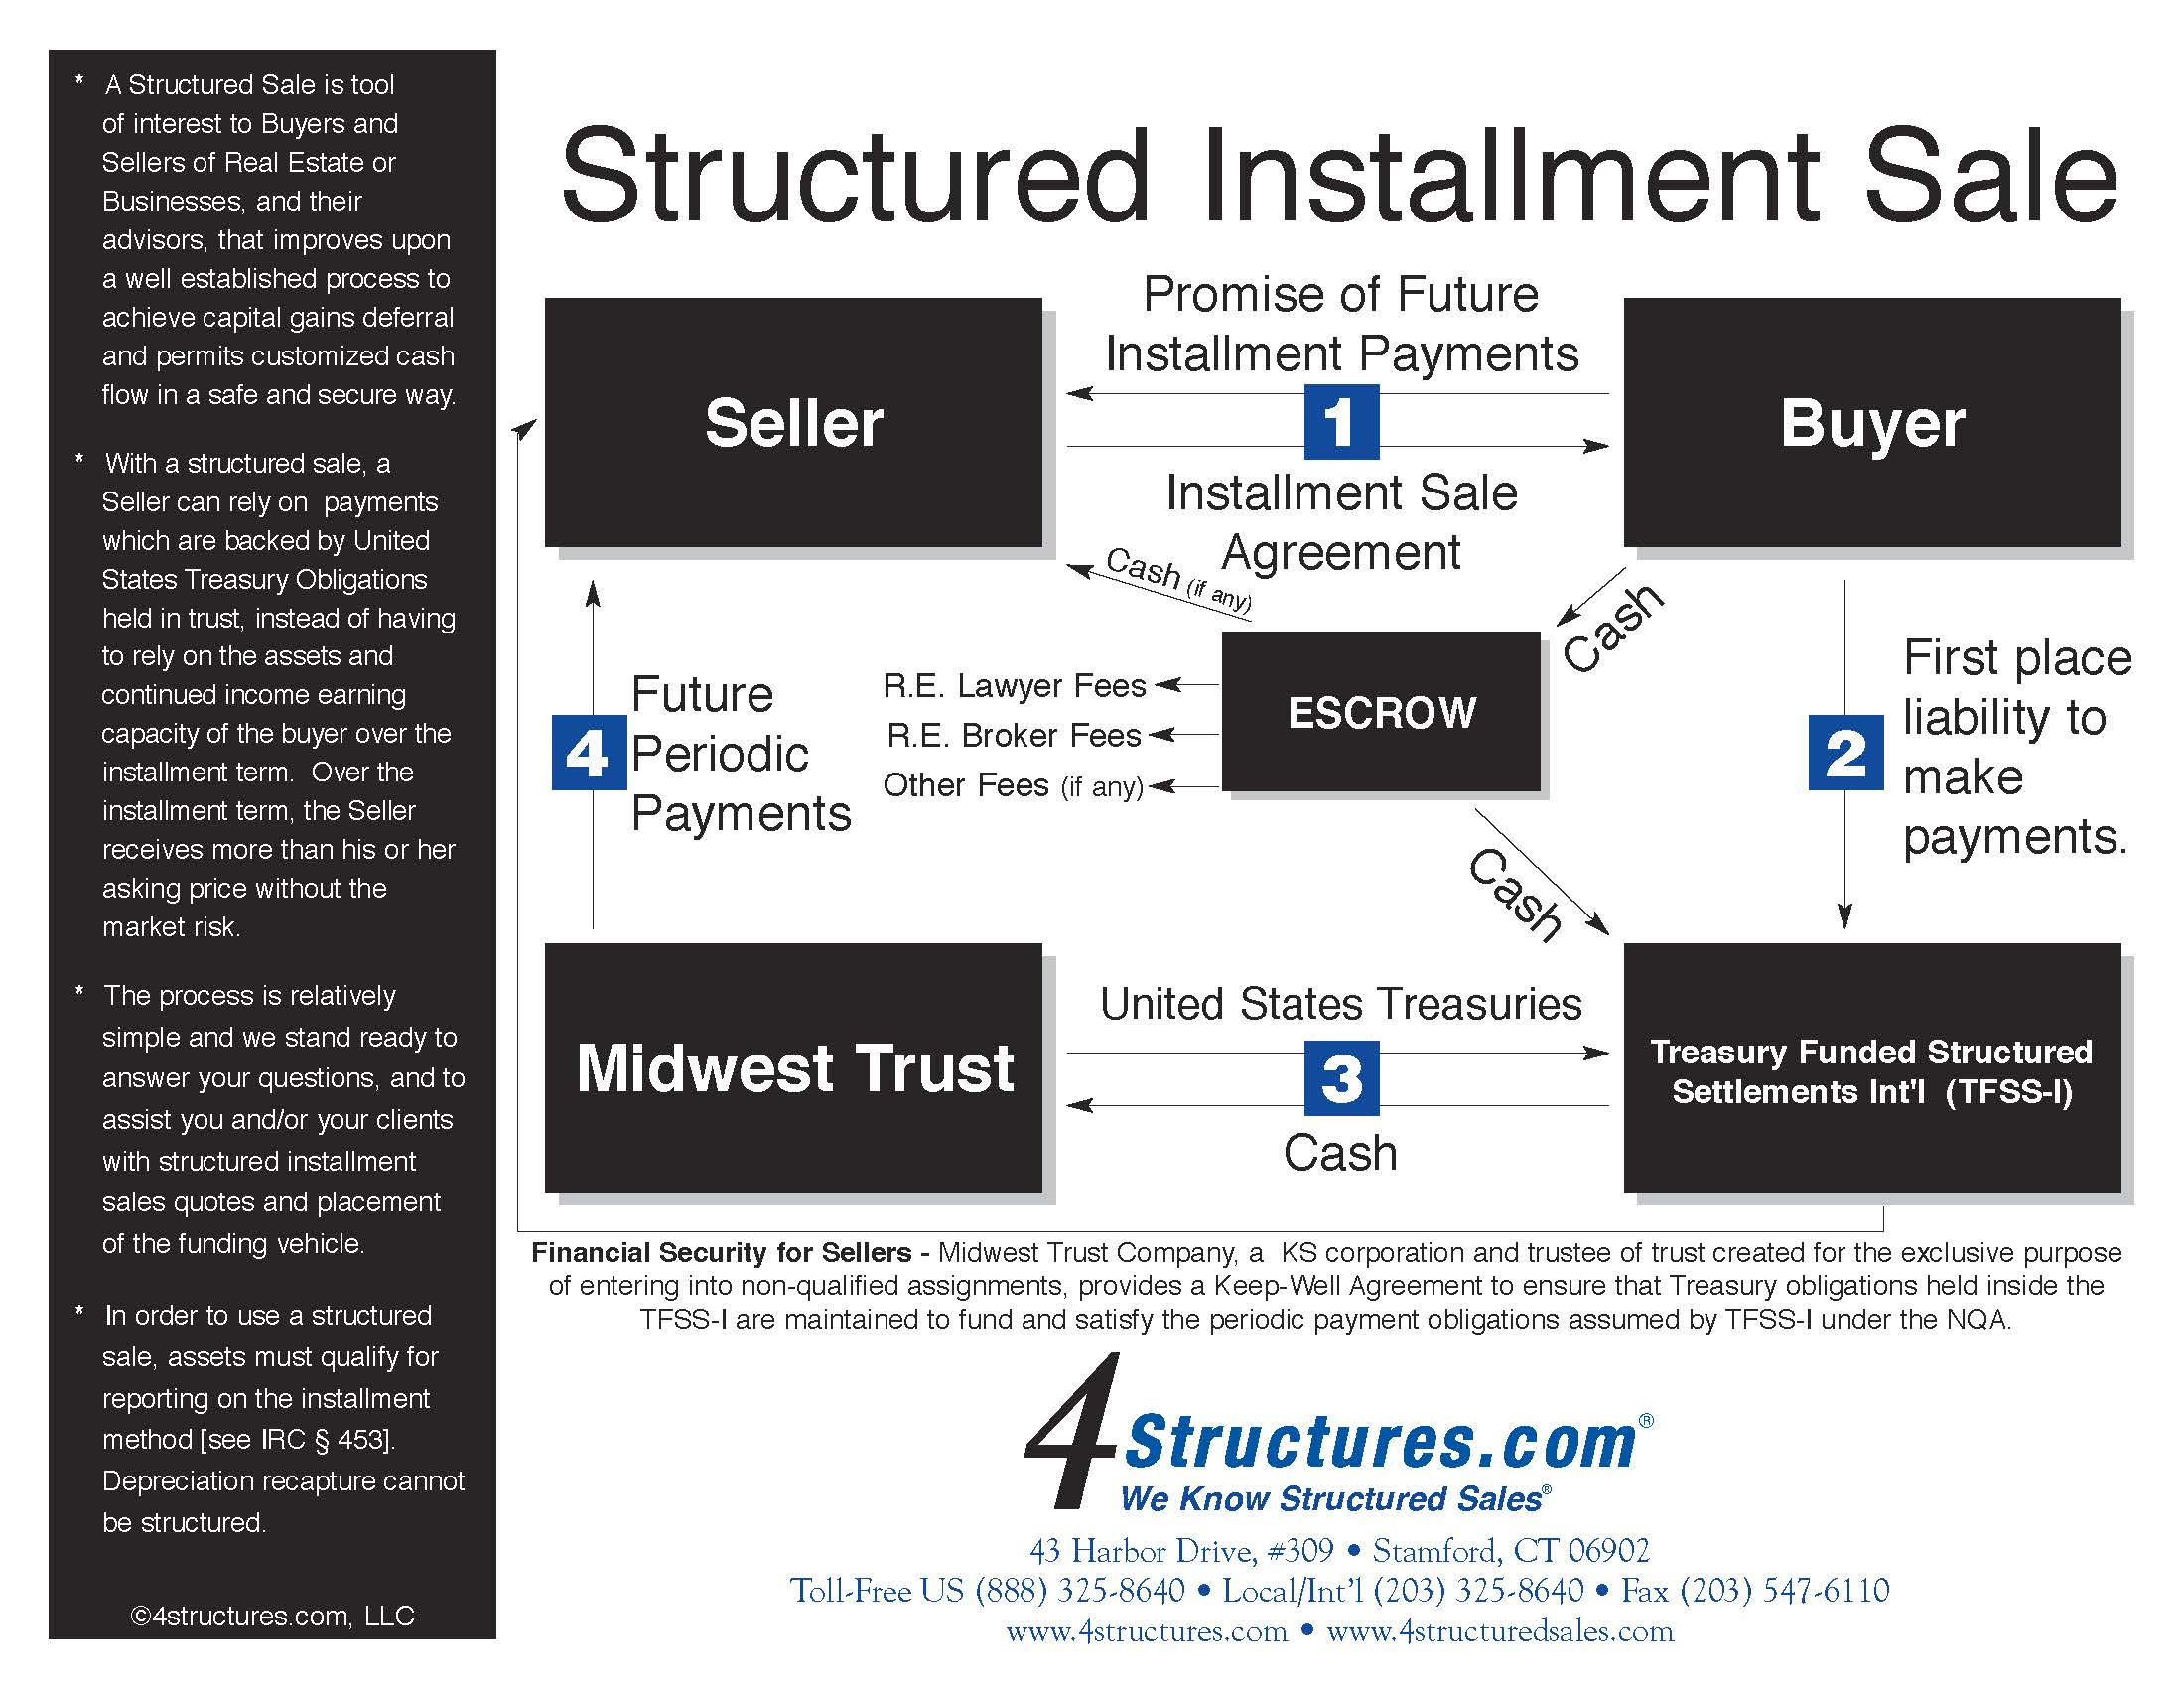 the structured sales authority 4structures com llc structured